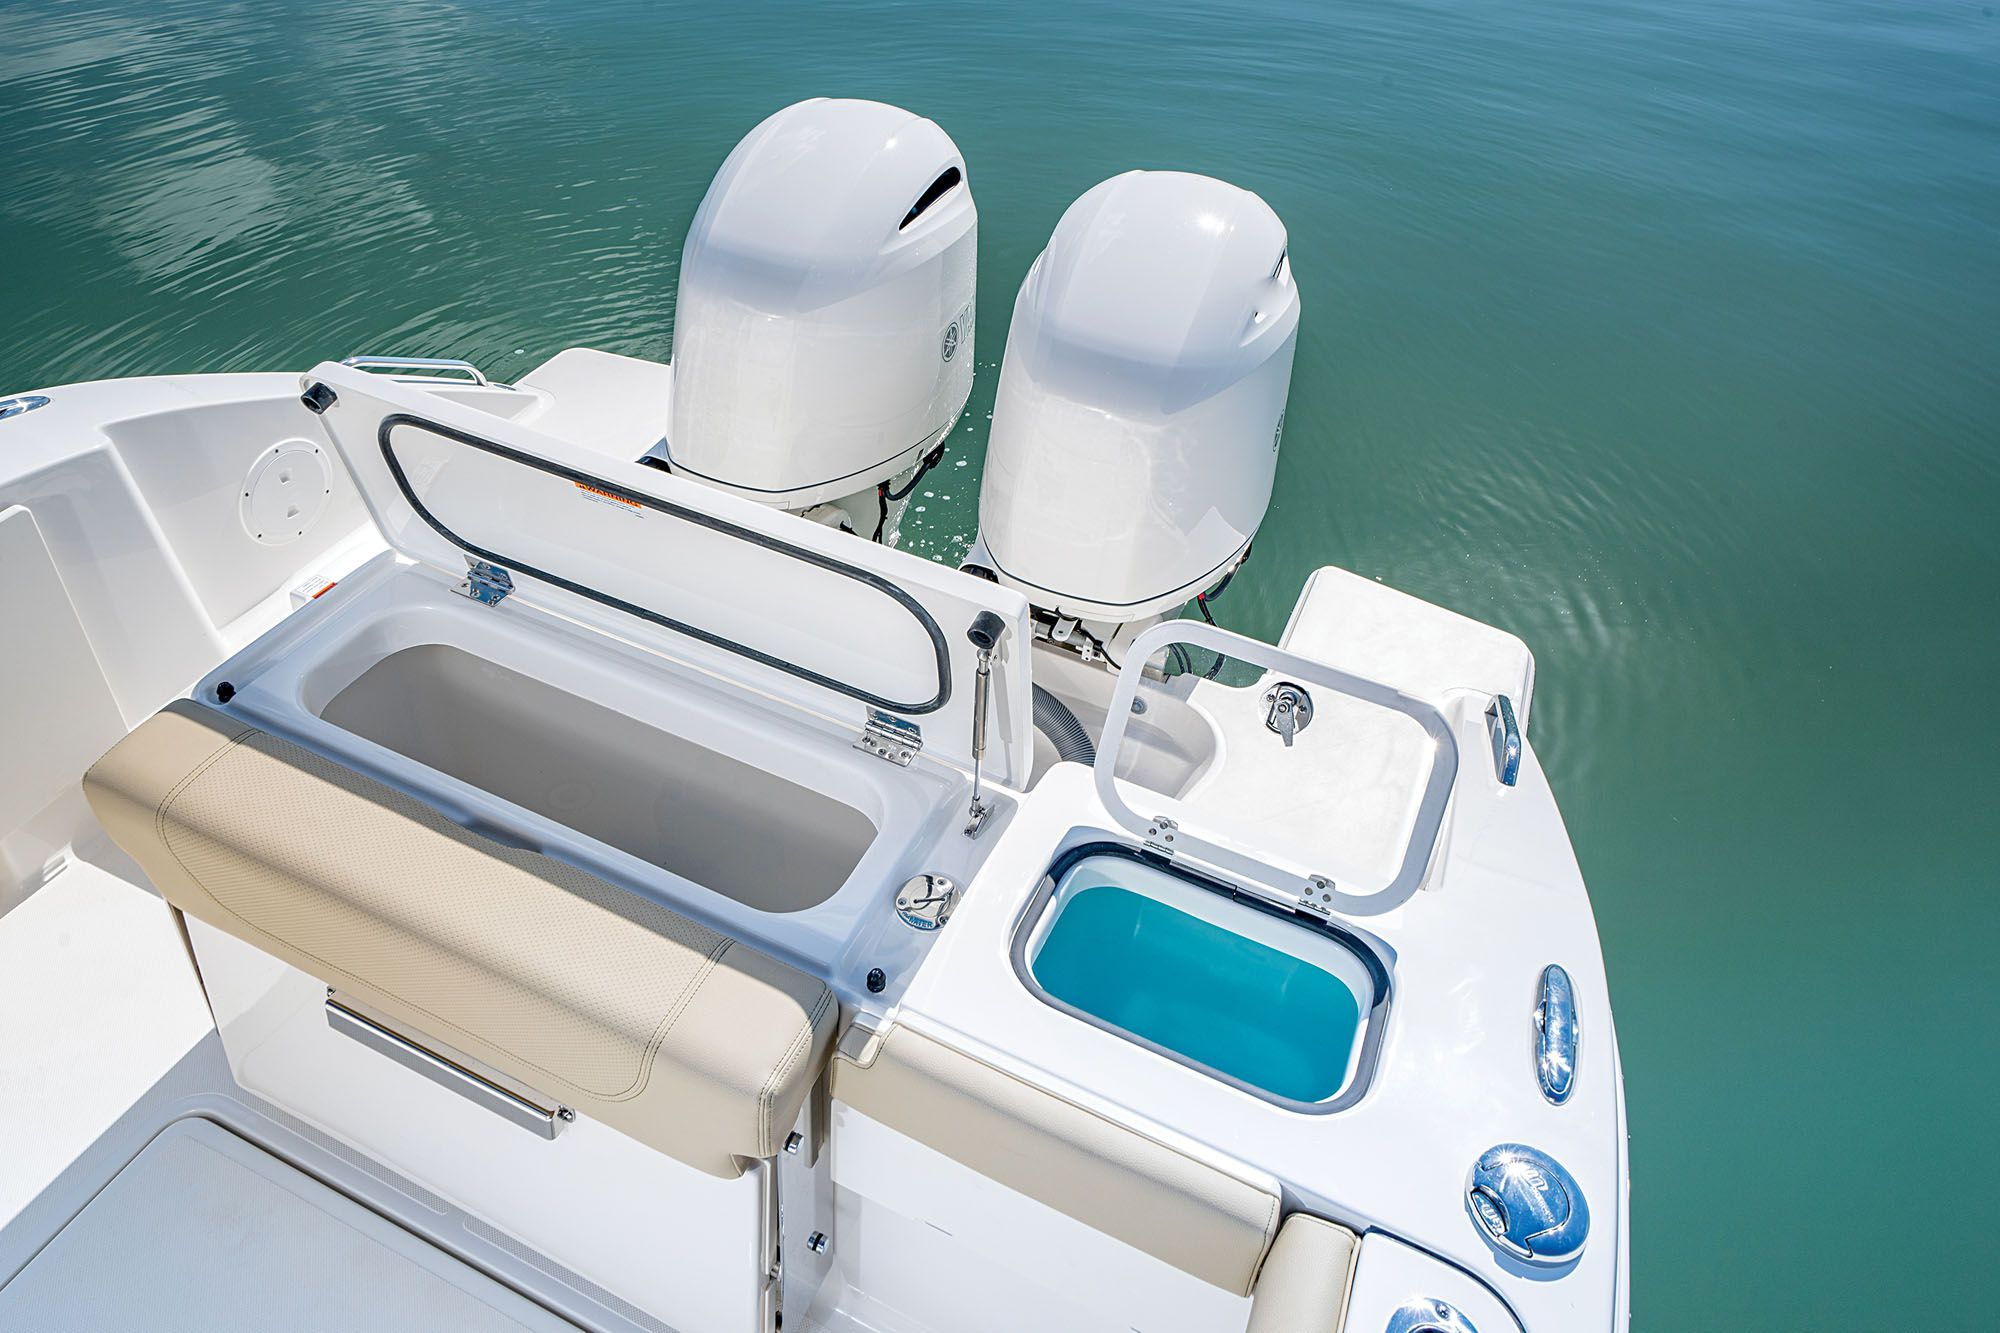 The transom houses a 20-gallon livewell with clear lid, and a 31-gallon insulated fish box next to it.